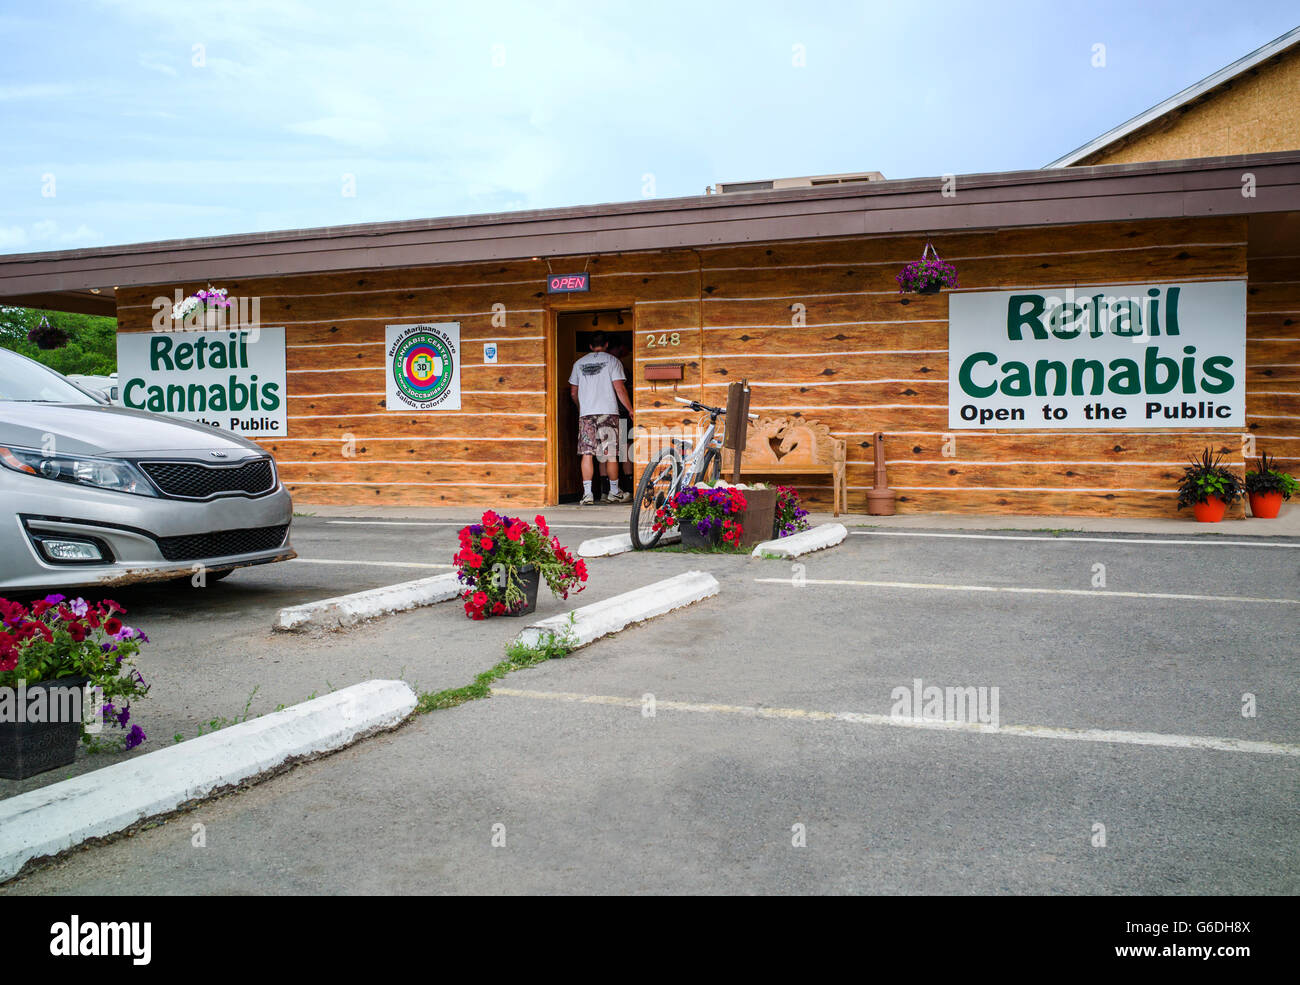 Retail Cannabis Marijuana store in Central Colorado; USA - Stock Image